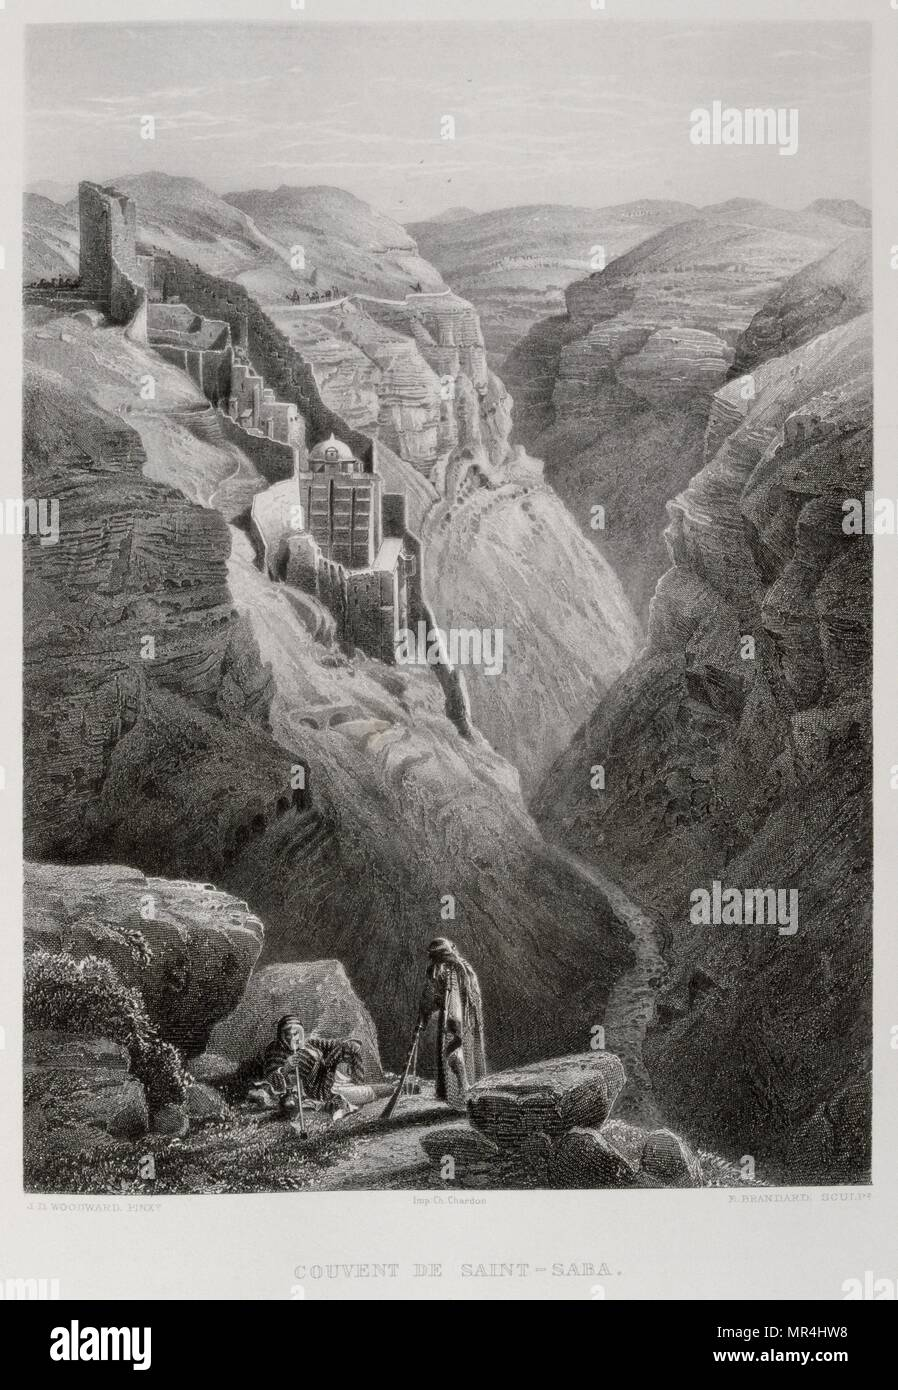 1875 Engraving, by Victor Guerin (1821 - 1891), depicting The Holy Lavra of Saint Sabbas the Sanctified, Mar Saba, an Eastern Orthodox Christian monastery overlooking the Kidron Valley at a point halfway between the Old City of Jerusalem and the Dead Sea - Stock Image